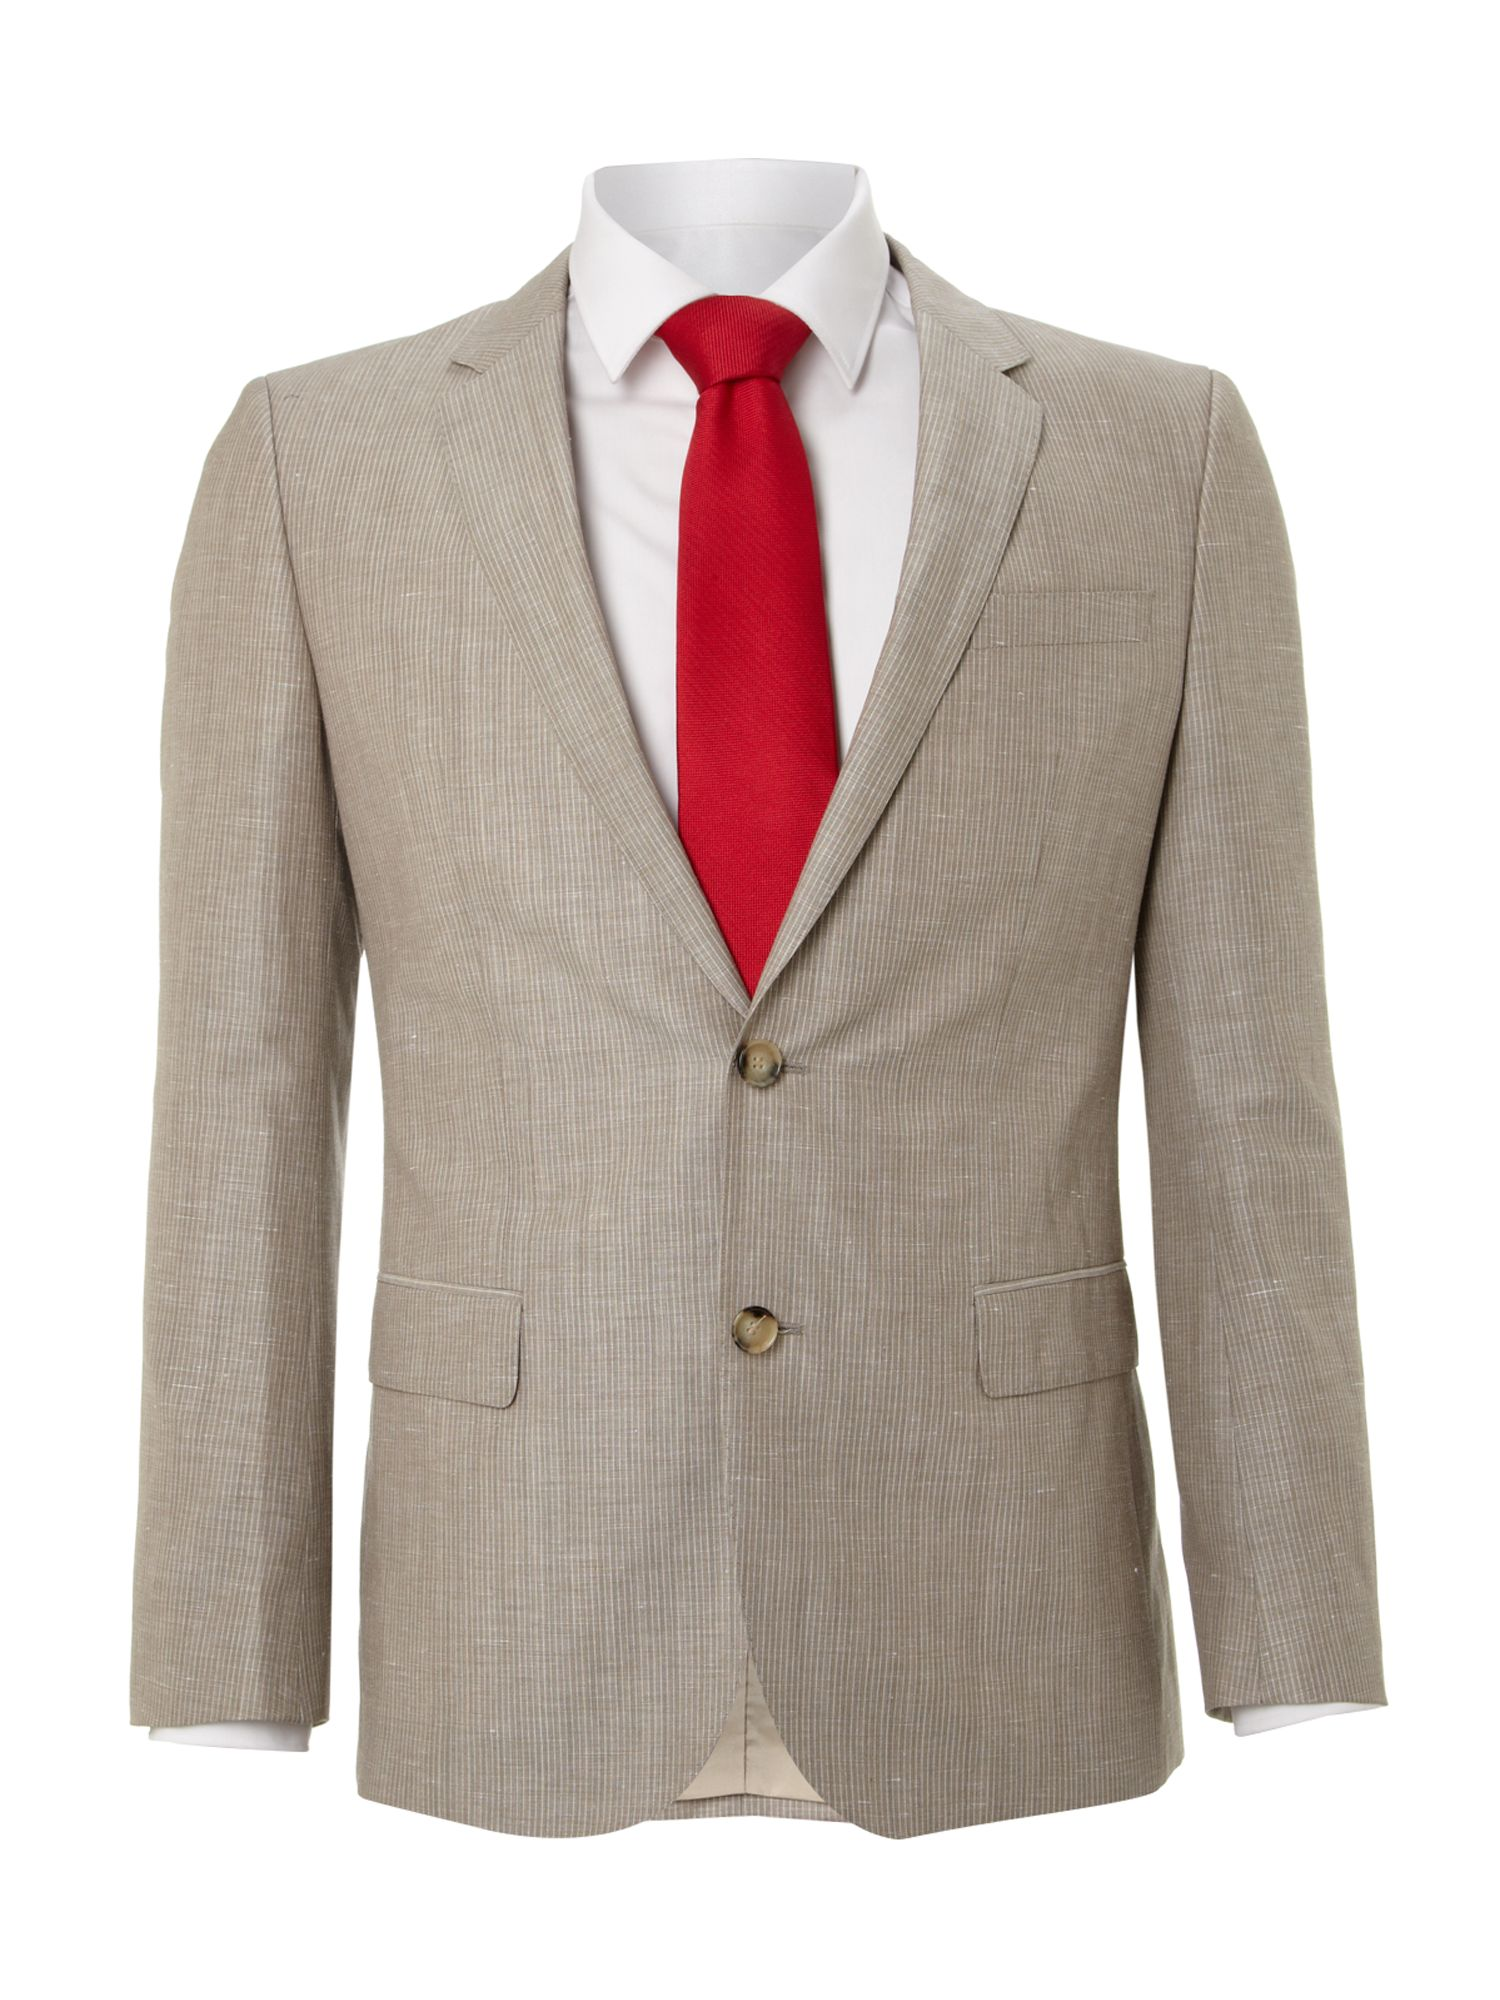 Hedge gense linen stripe slim fit suit